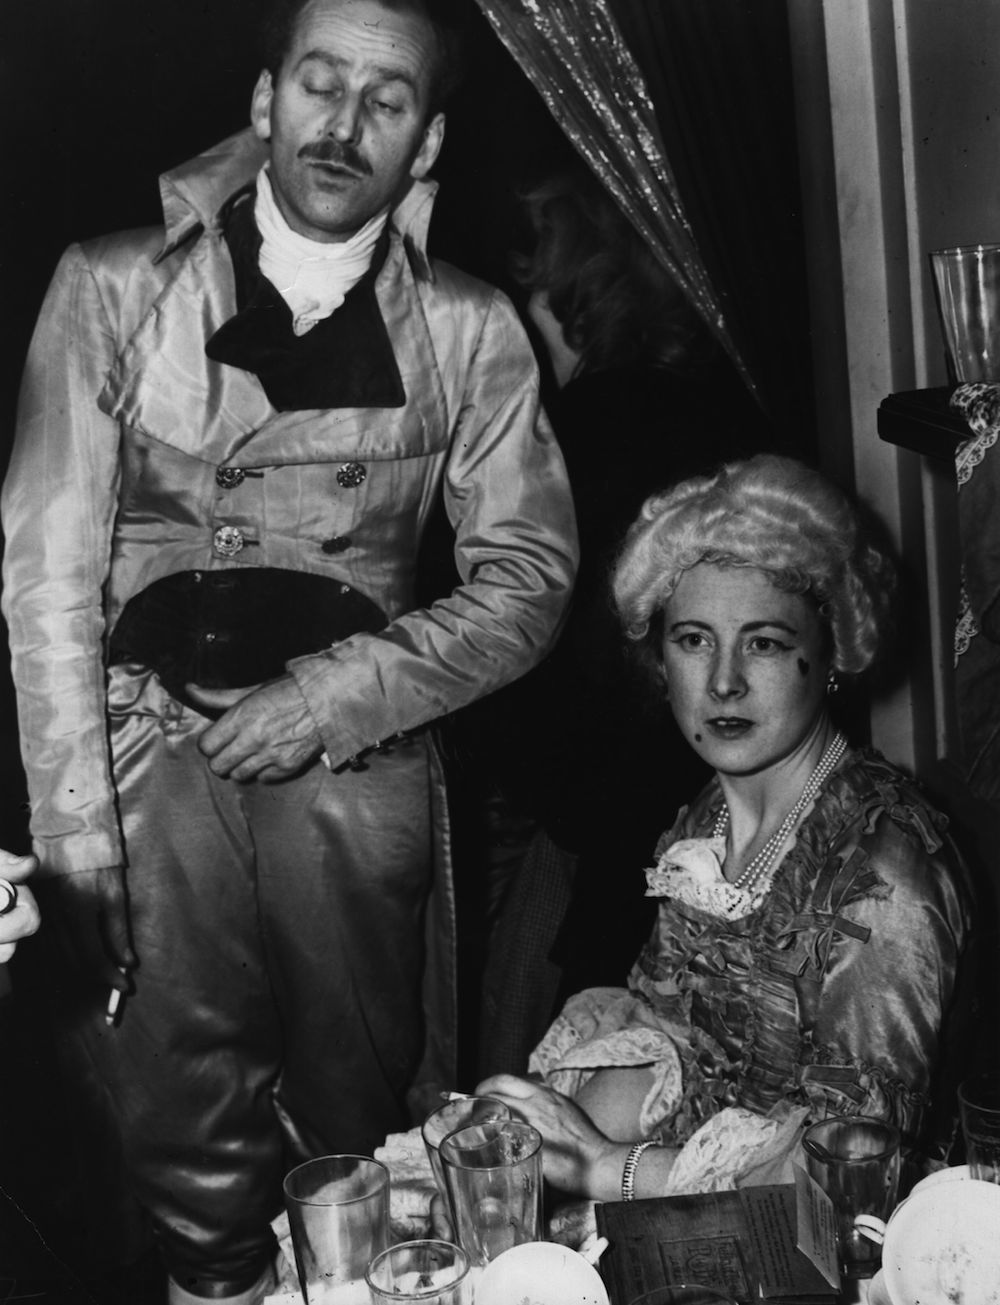 31st December 1946: Ted and Barbara Castle (1911 - 2002) at the Chelsea Arts Ball, New Years Eve 1946. (Photo by Topical Press Agency/Hulton Archive/Getty Images)